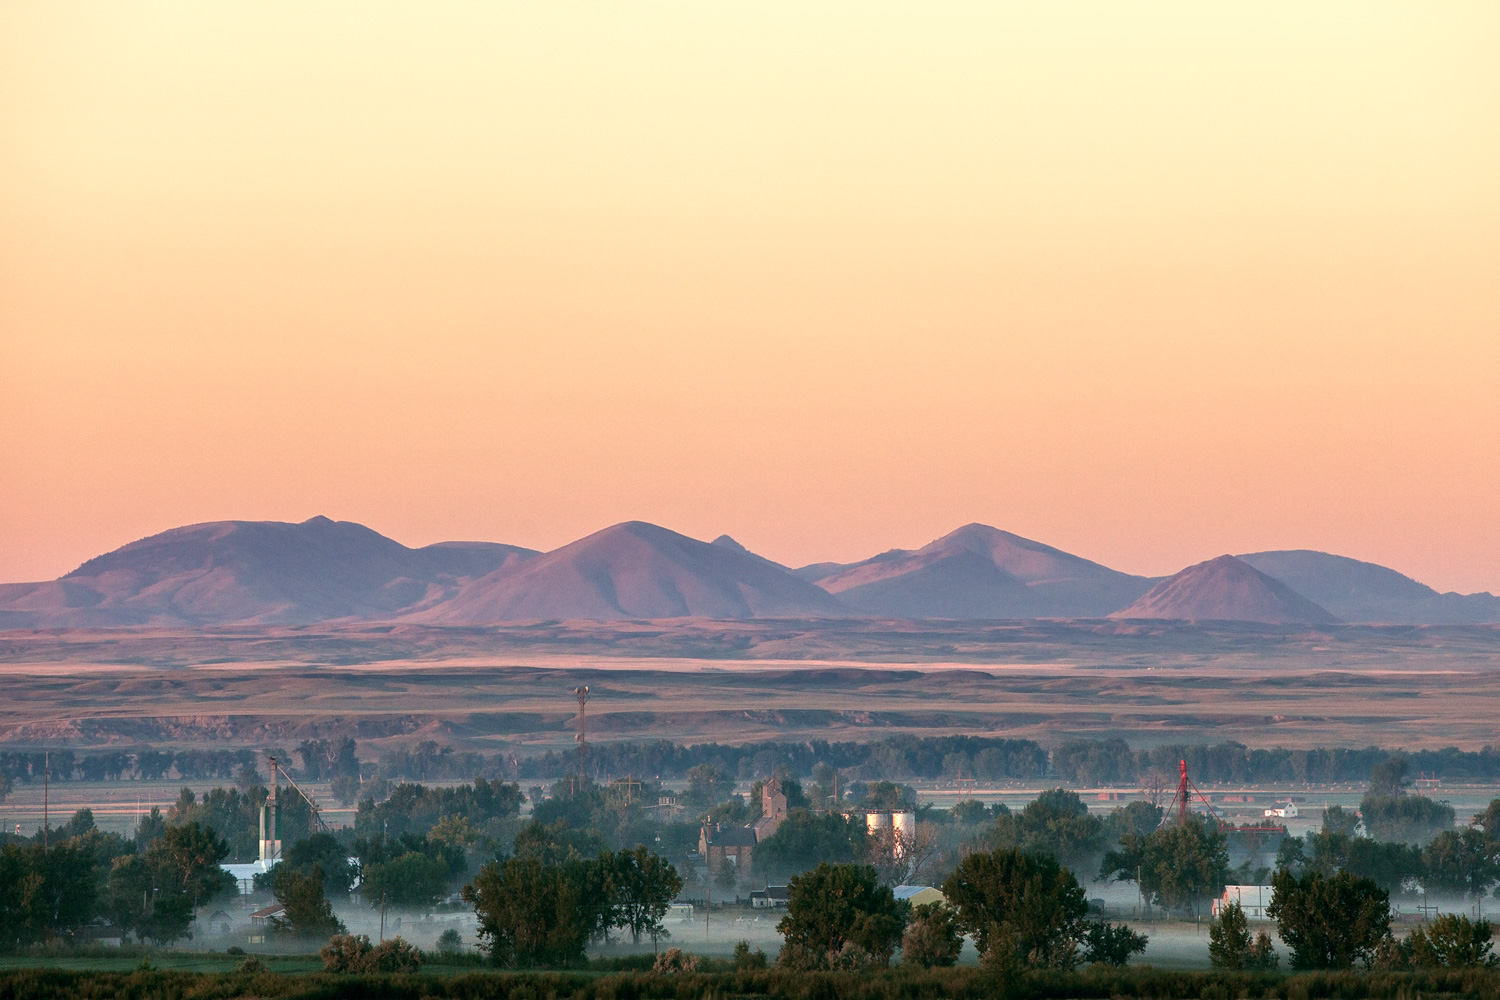 Fog drapes downtown Harlem, Montana with the Bear Paw Mountains looming large in the background.   → Buy a Print   or   License Photo